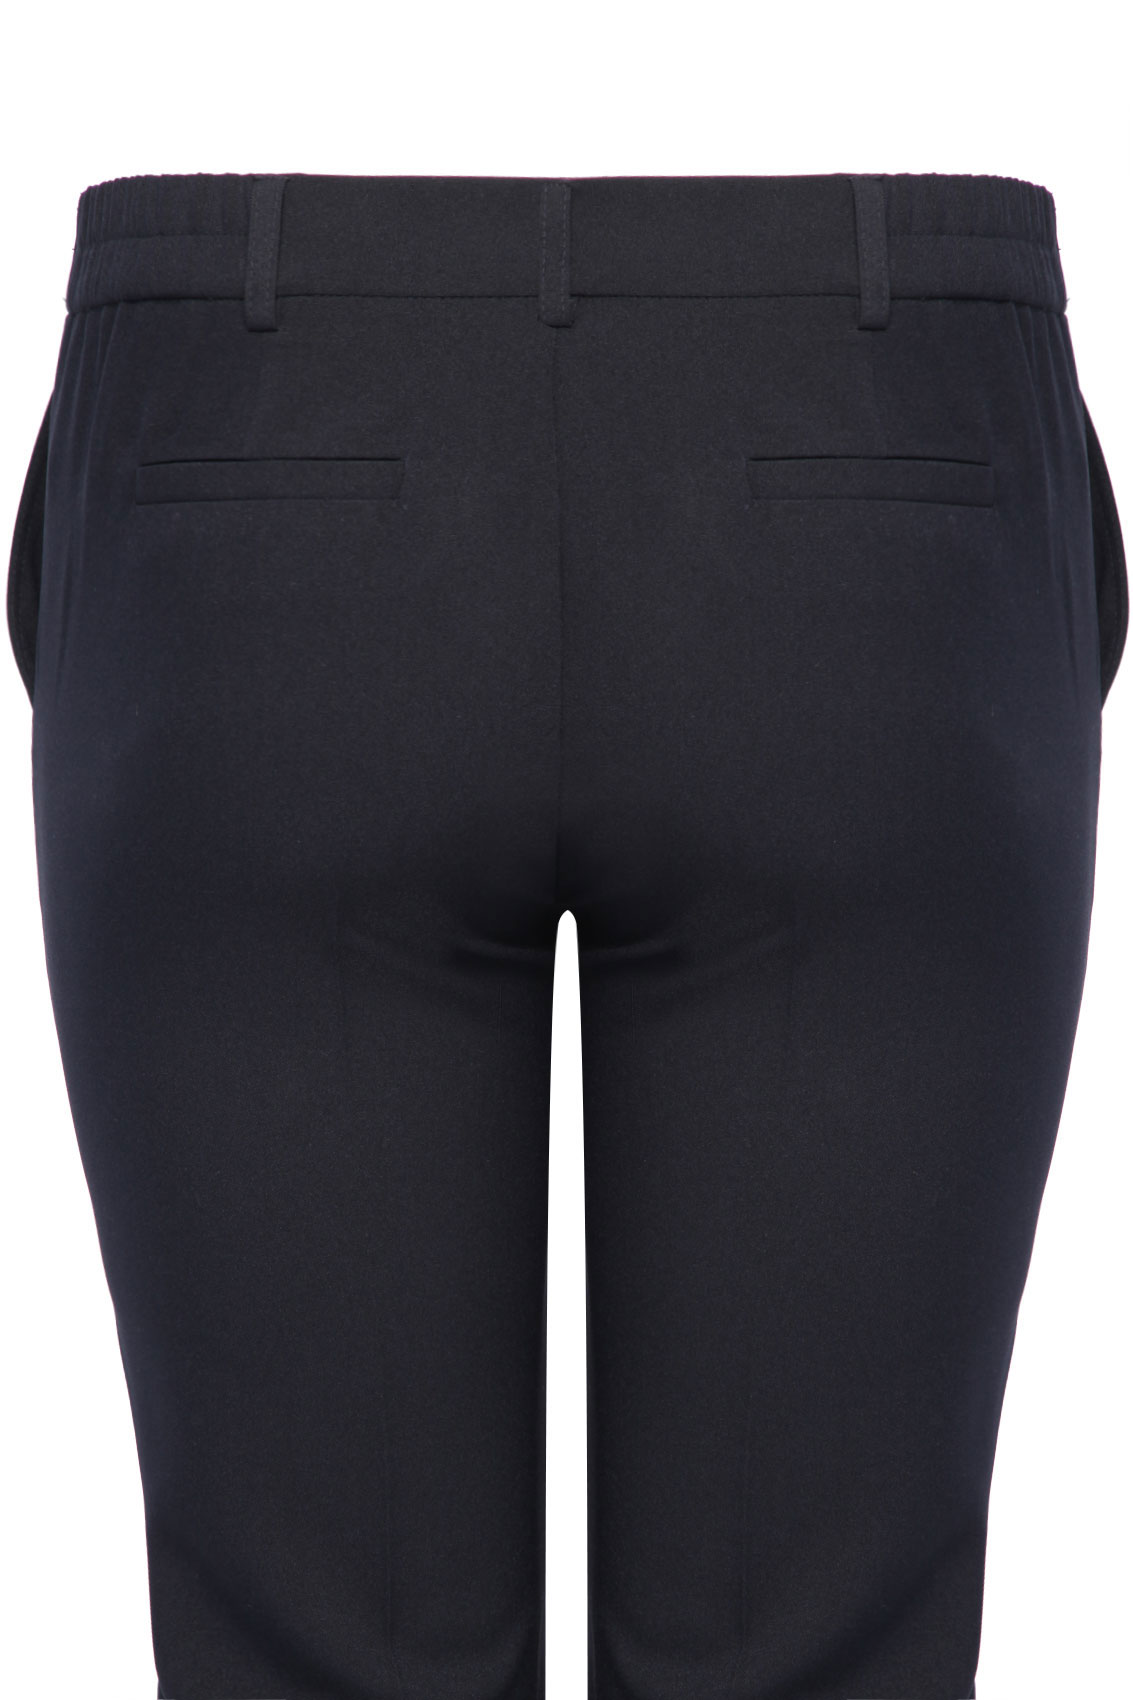 Black Stretch Slim Leg Trousers. £ find in store. FREE Store Collection over £ Free Delivery* Free Returns* Product Details & Care Guide. Brand new this season, New Look has launched The Rochelle Edit. Handpicked by the face of the collection, Rochelle Humes herself, get ready for spring's most loved collection.